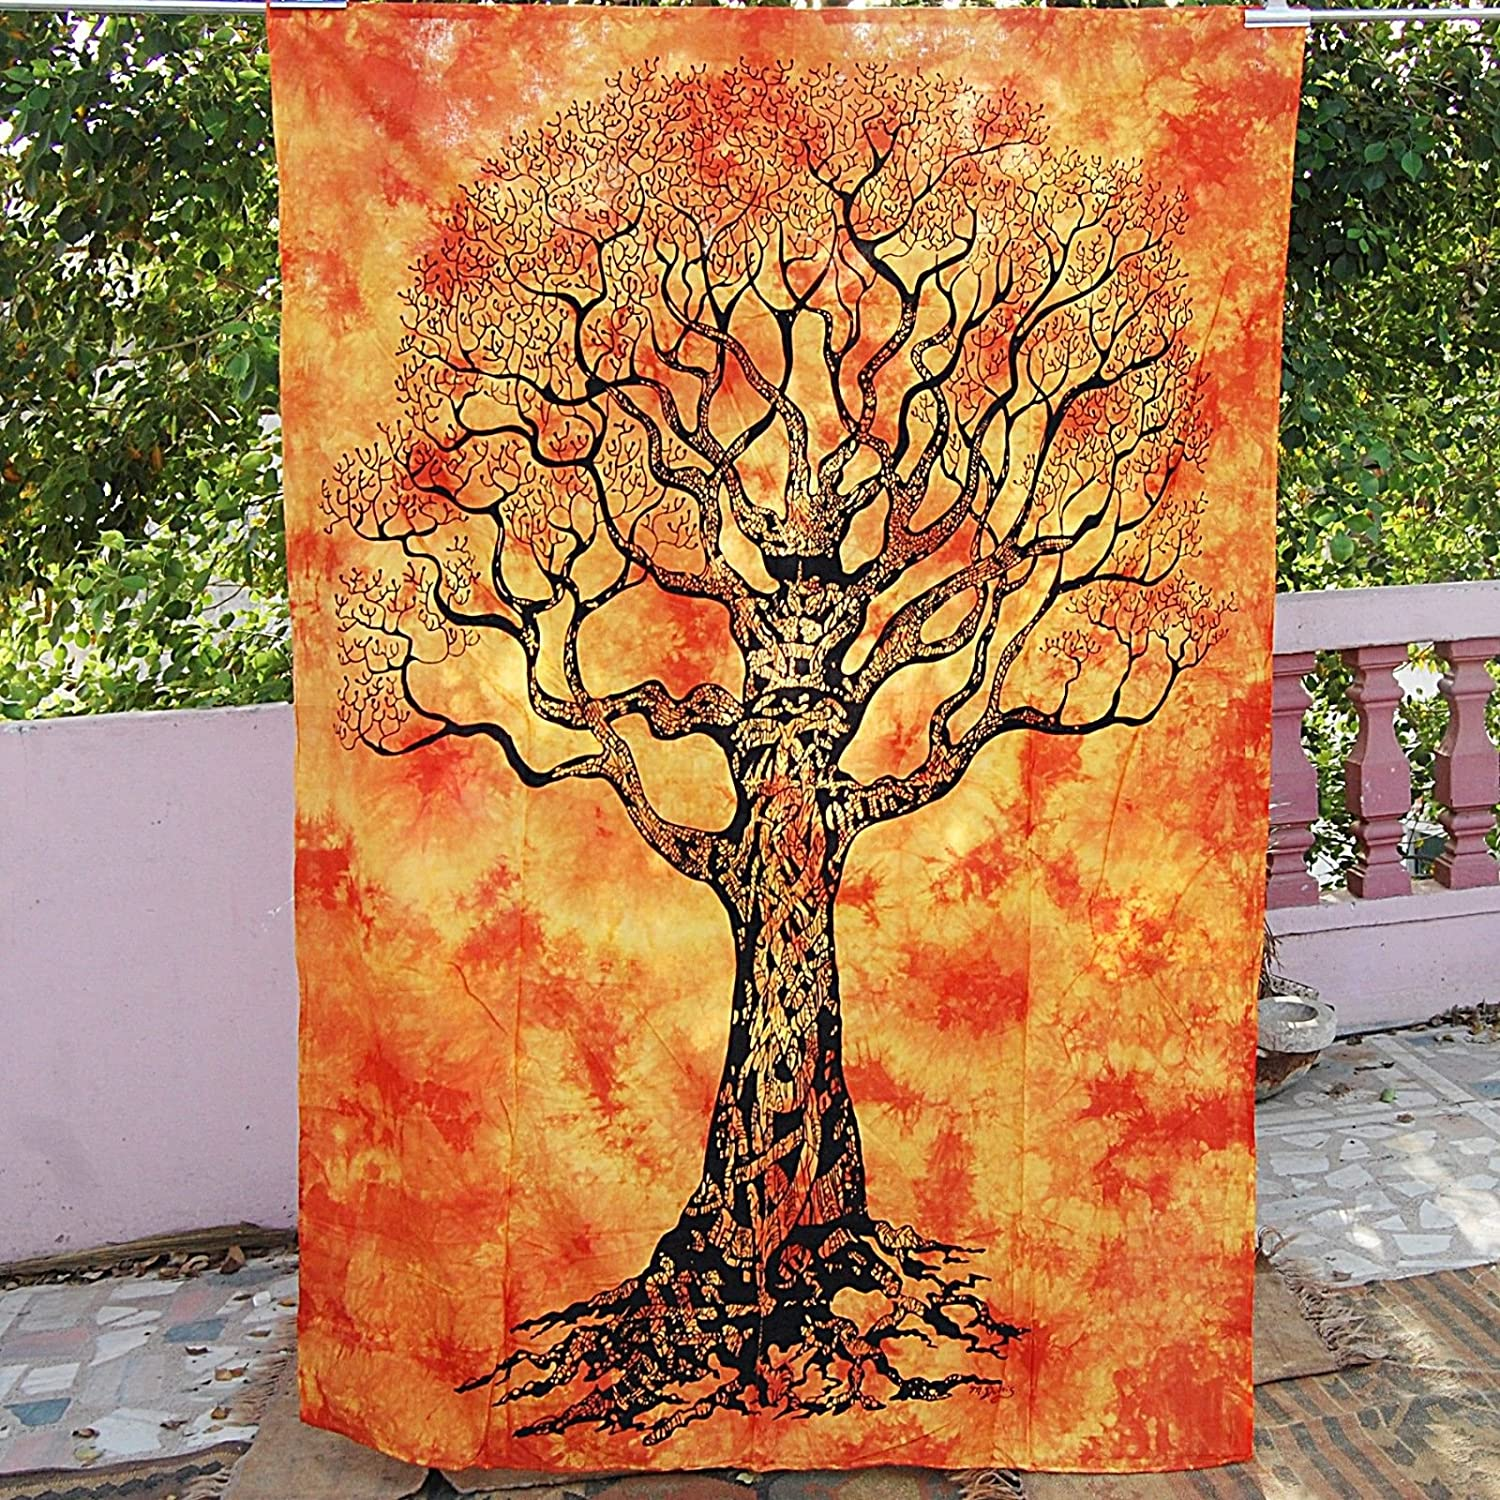 Future Handmade Tapestry Colorful Wall Hanging Hippies Tapestry Poster Size, Design P10